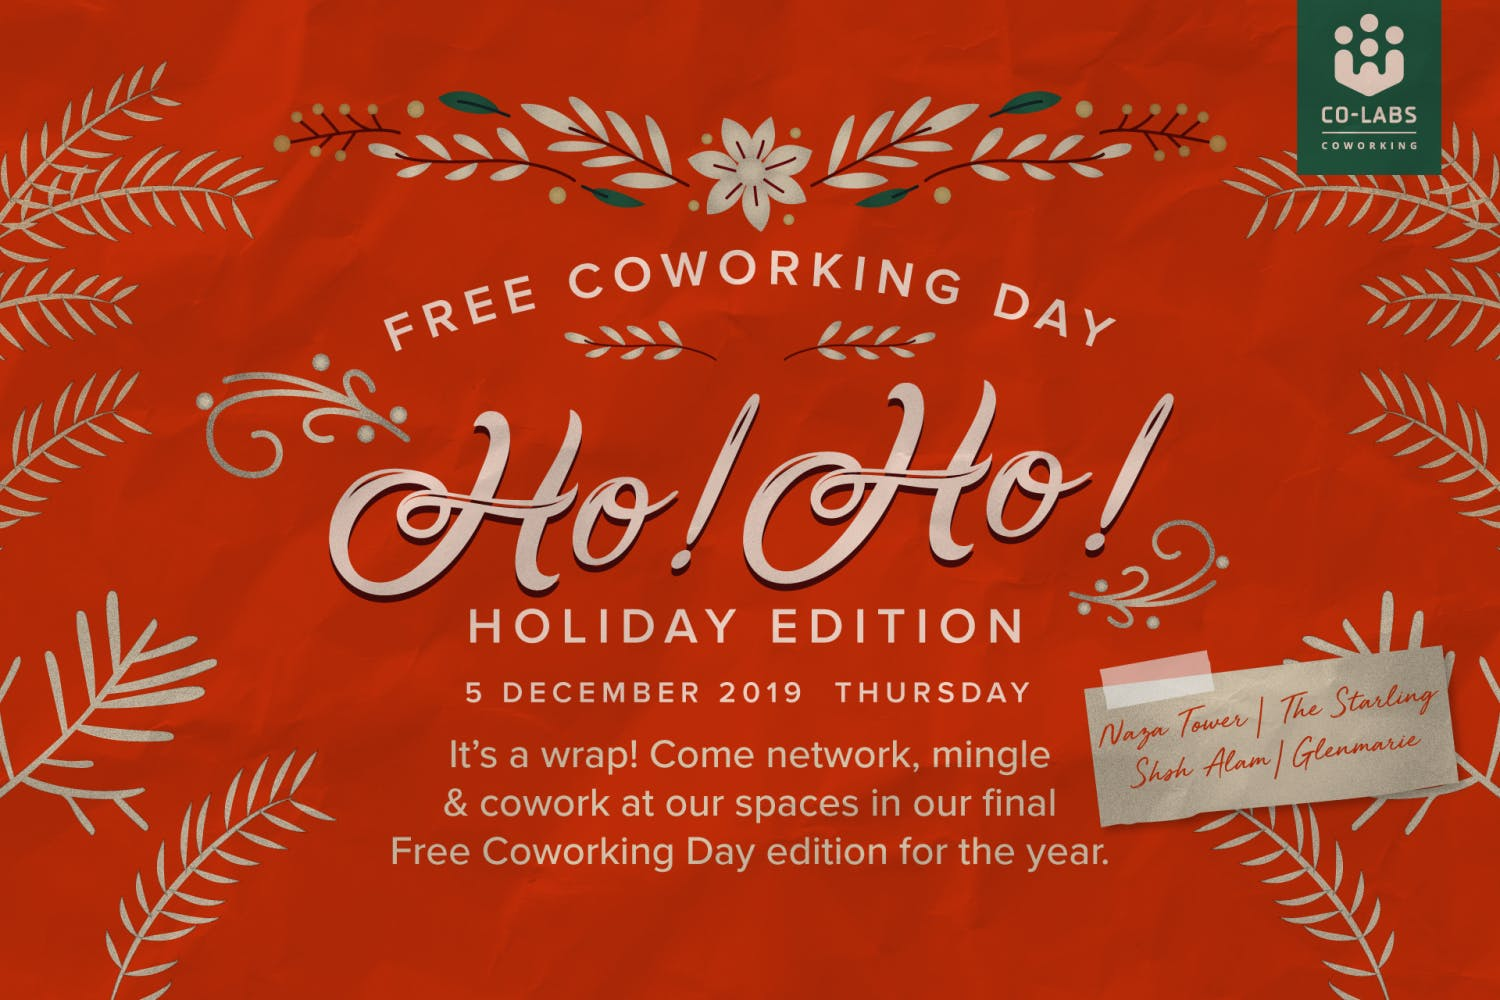 Free Coworking Day: Ho! Ho! Holiday Edition